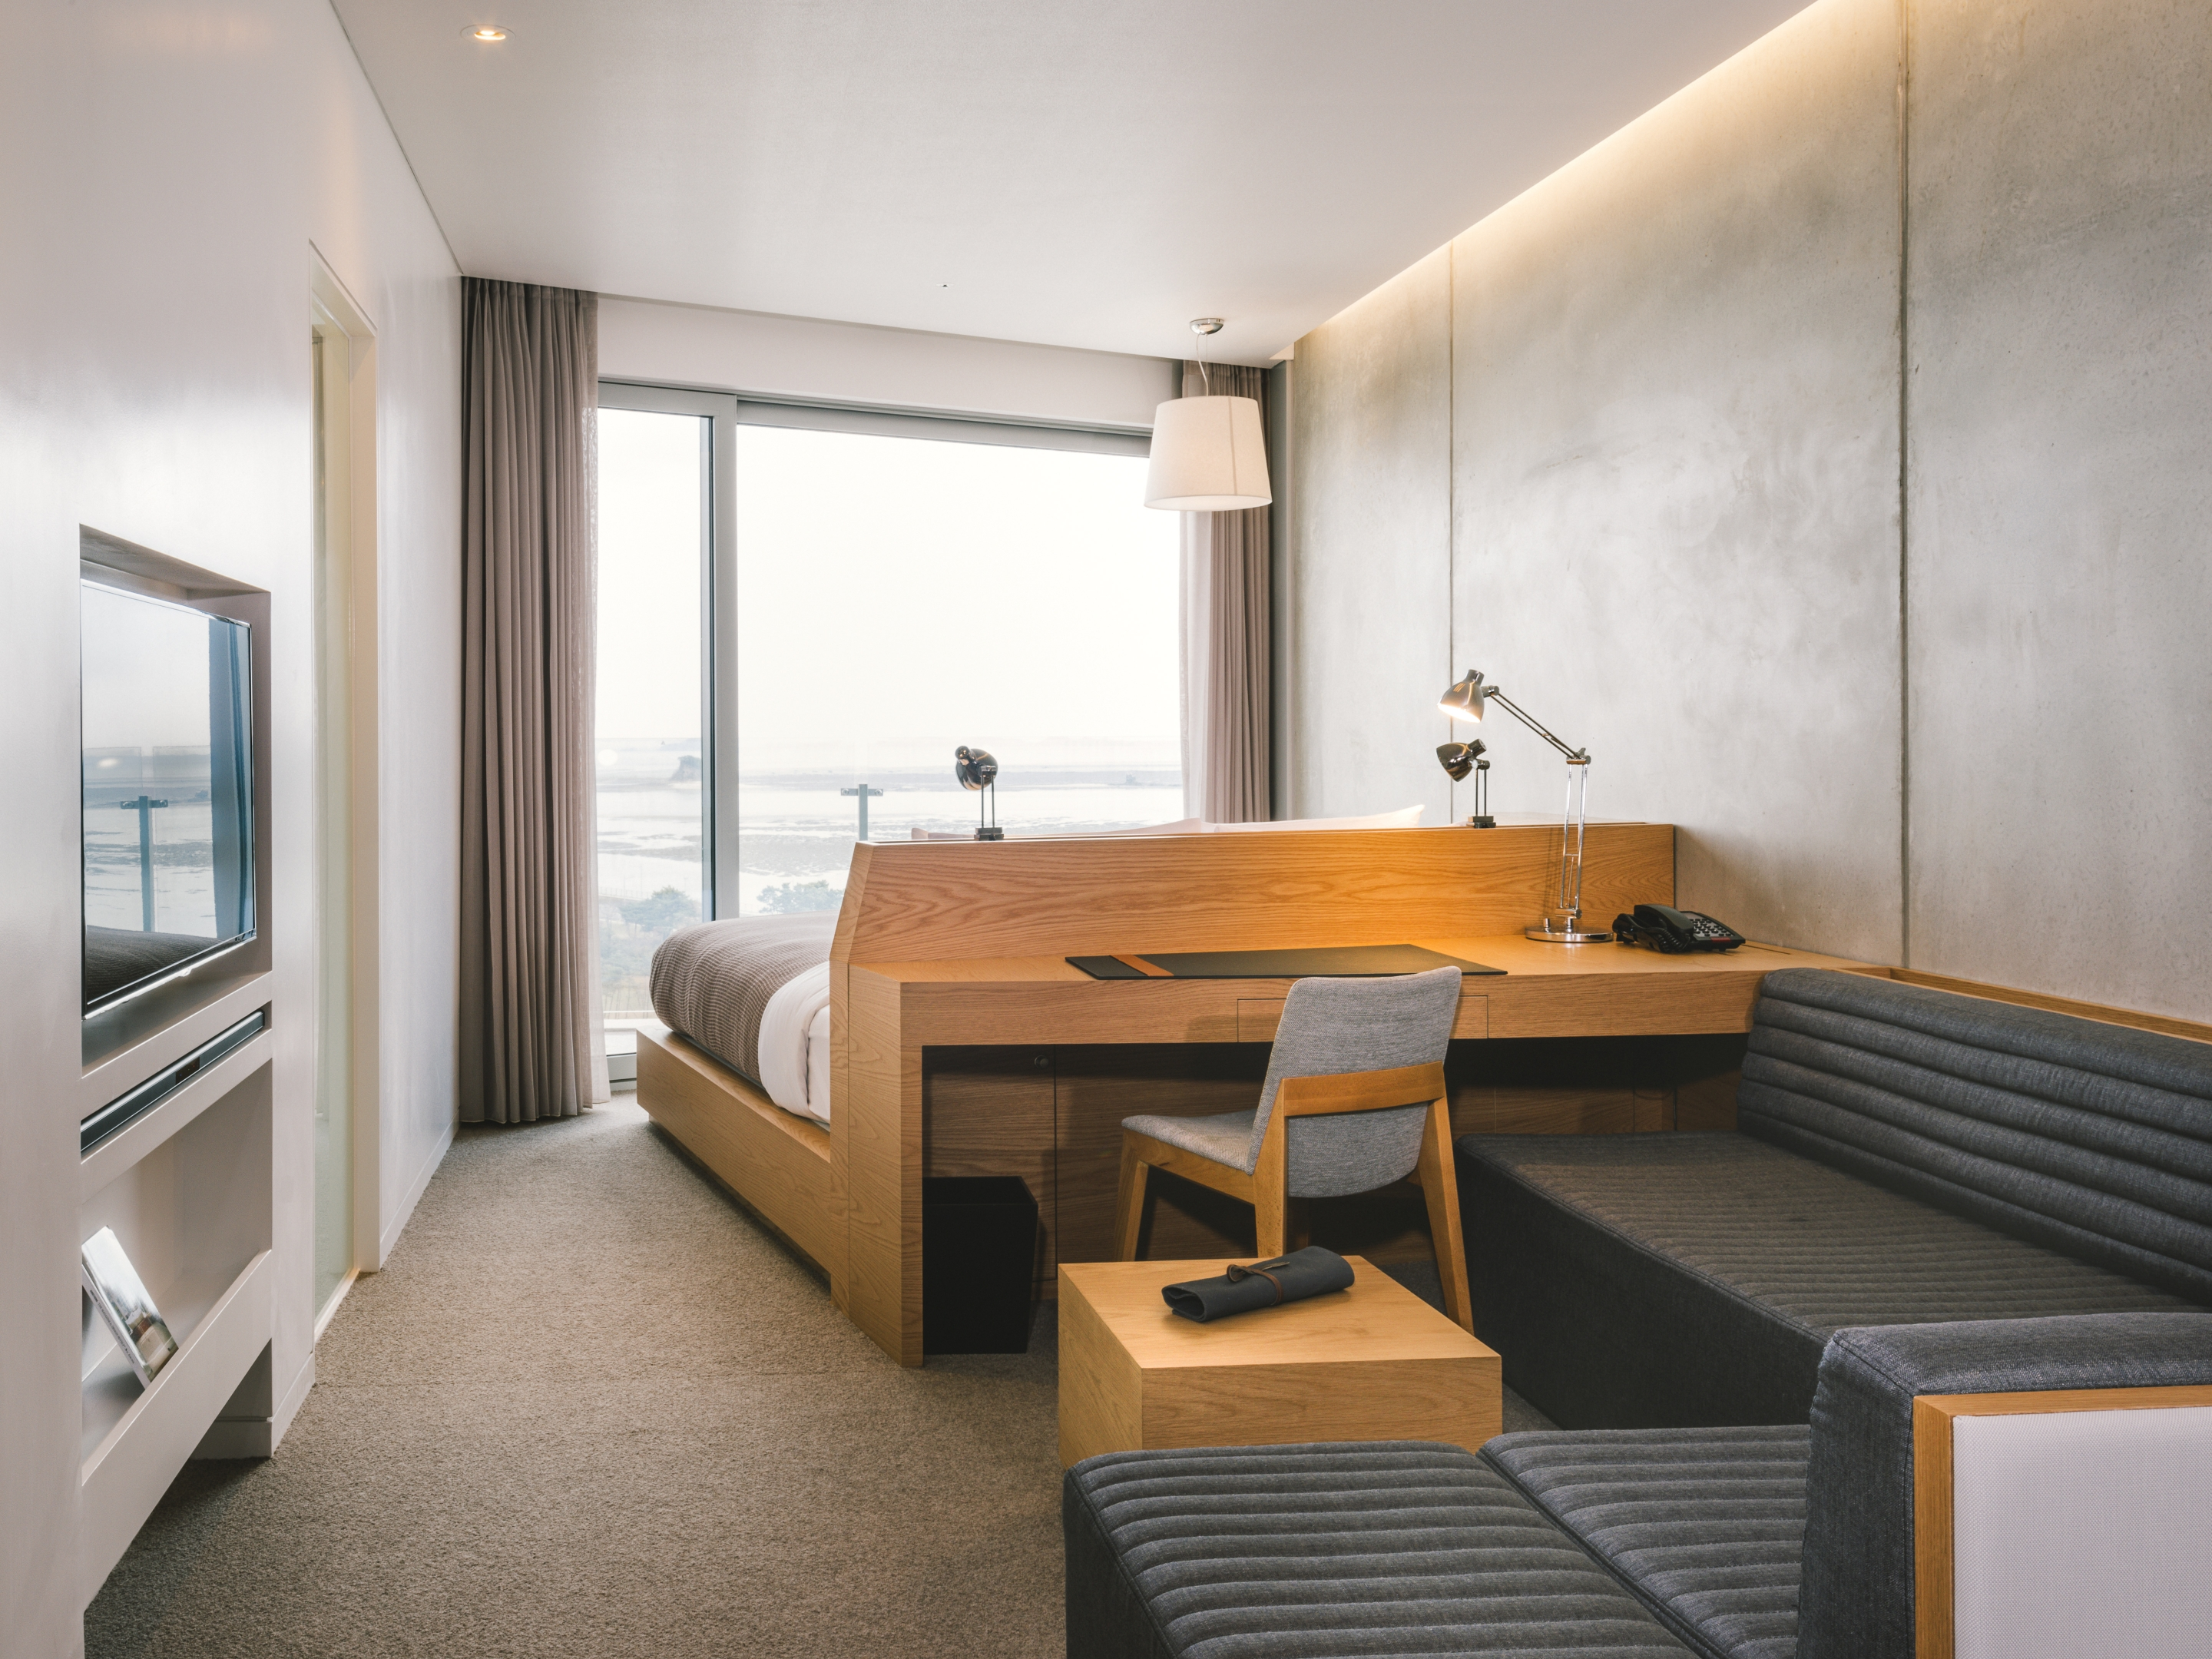 Nest Hotel Rooms Design Hotels